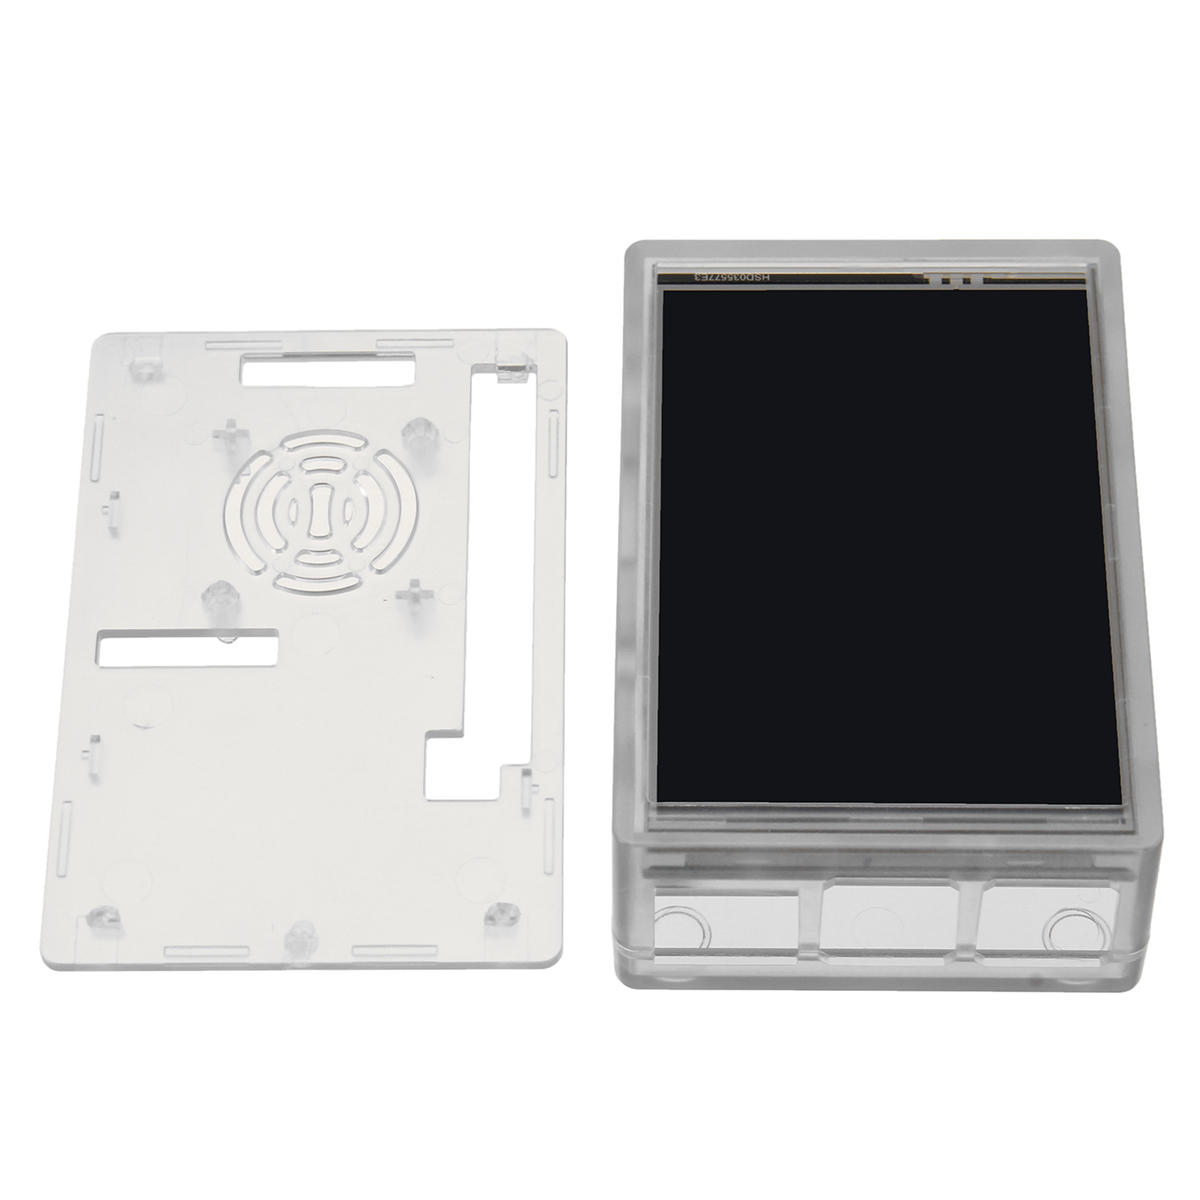 Clear Acrylic Case Enclosure Protective Shell+ 3.5 Inch TFT Touch Screen LCD Display Monitor kit for Raspberry Pi